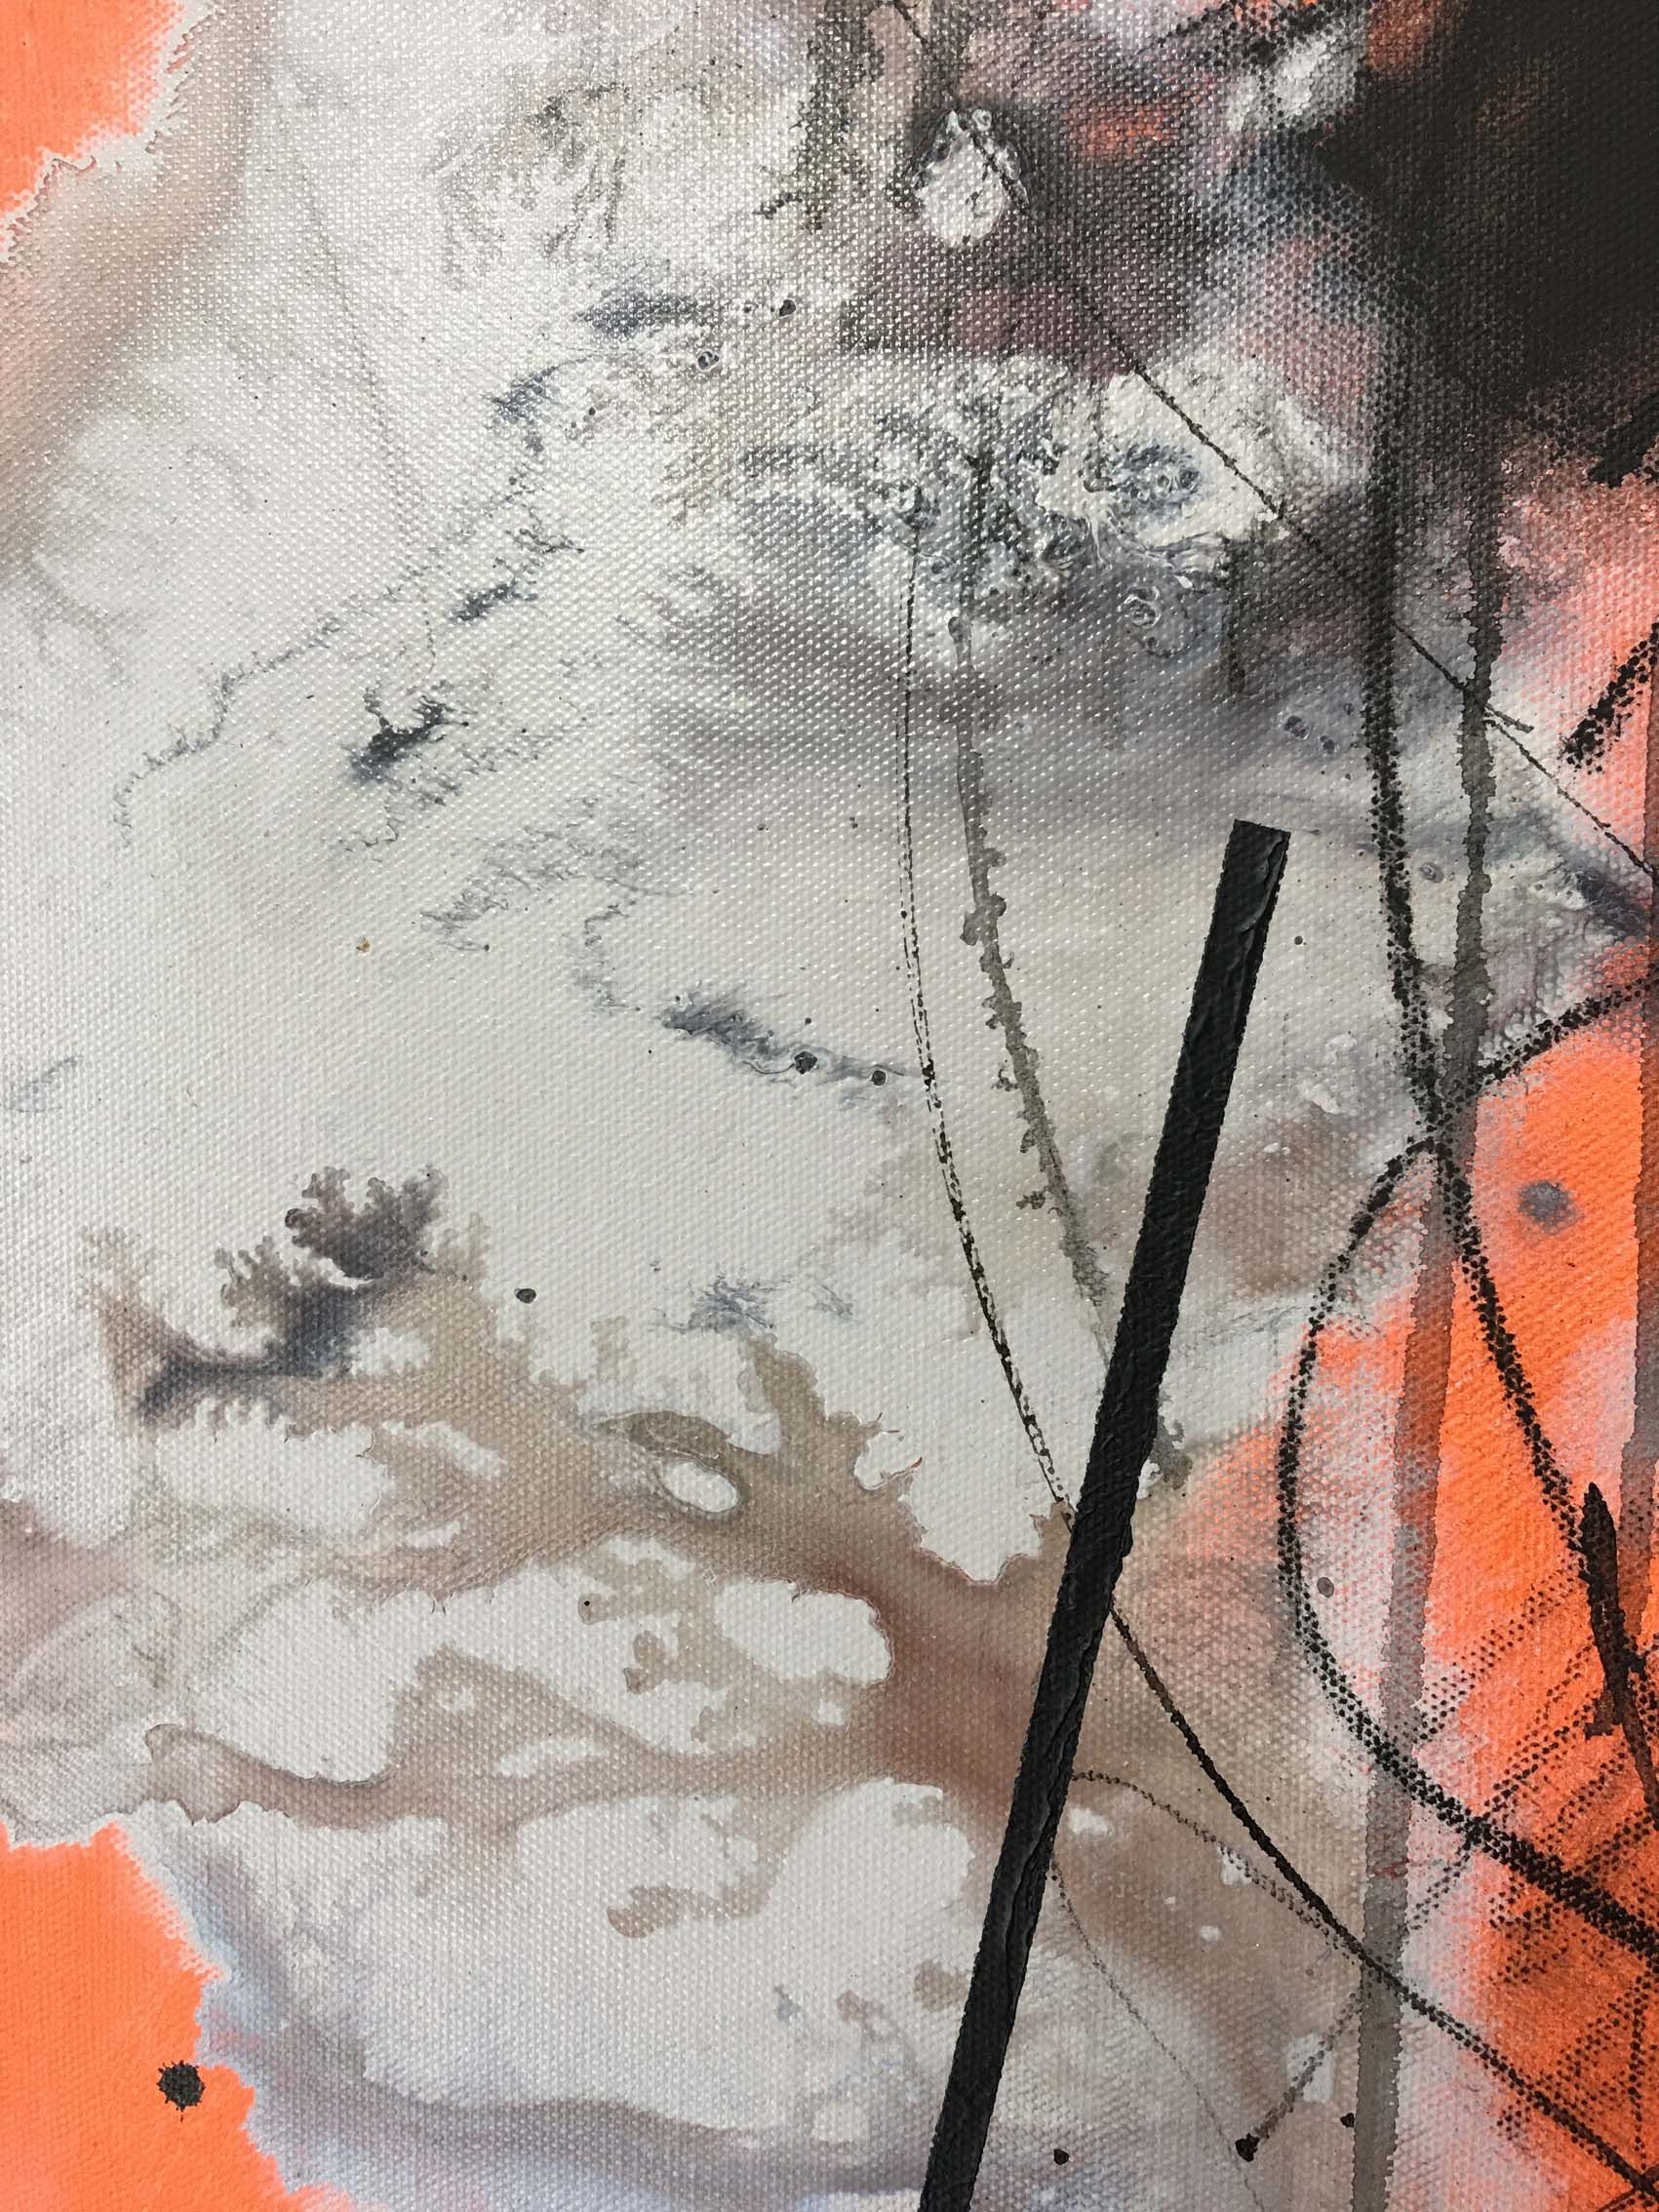 No. 189,Hongyu Zhang,Peinture contemporaine, detail 3